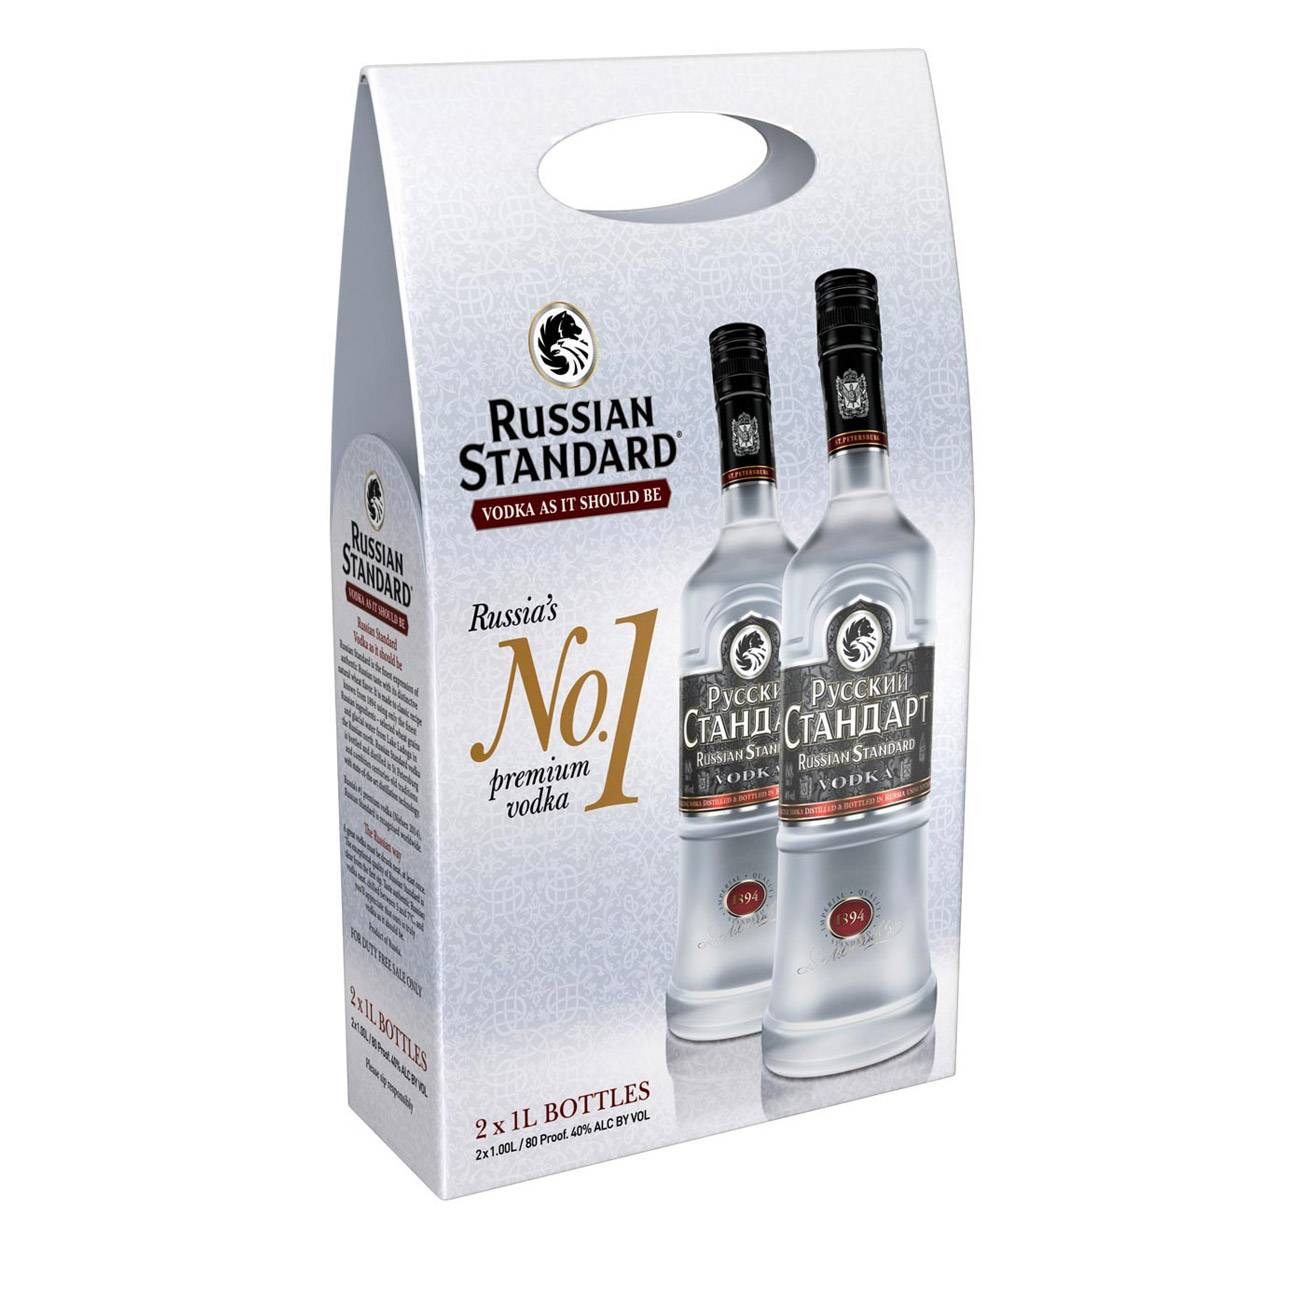 Vodka 2X1L 2000 Ml